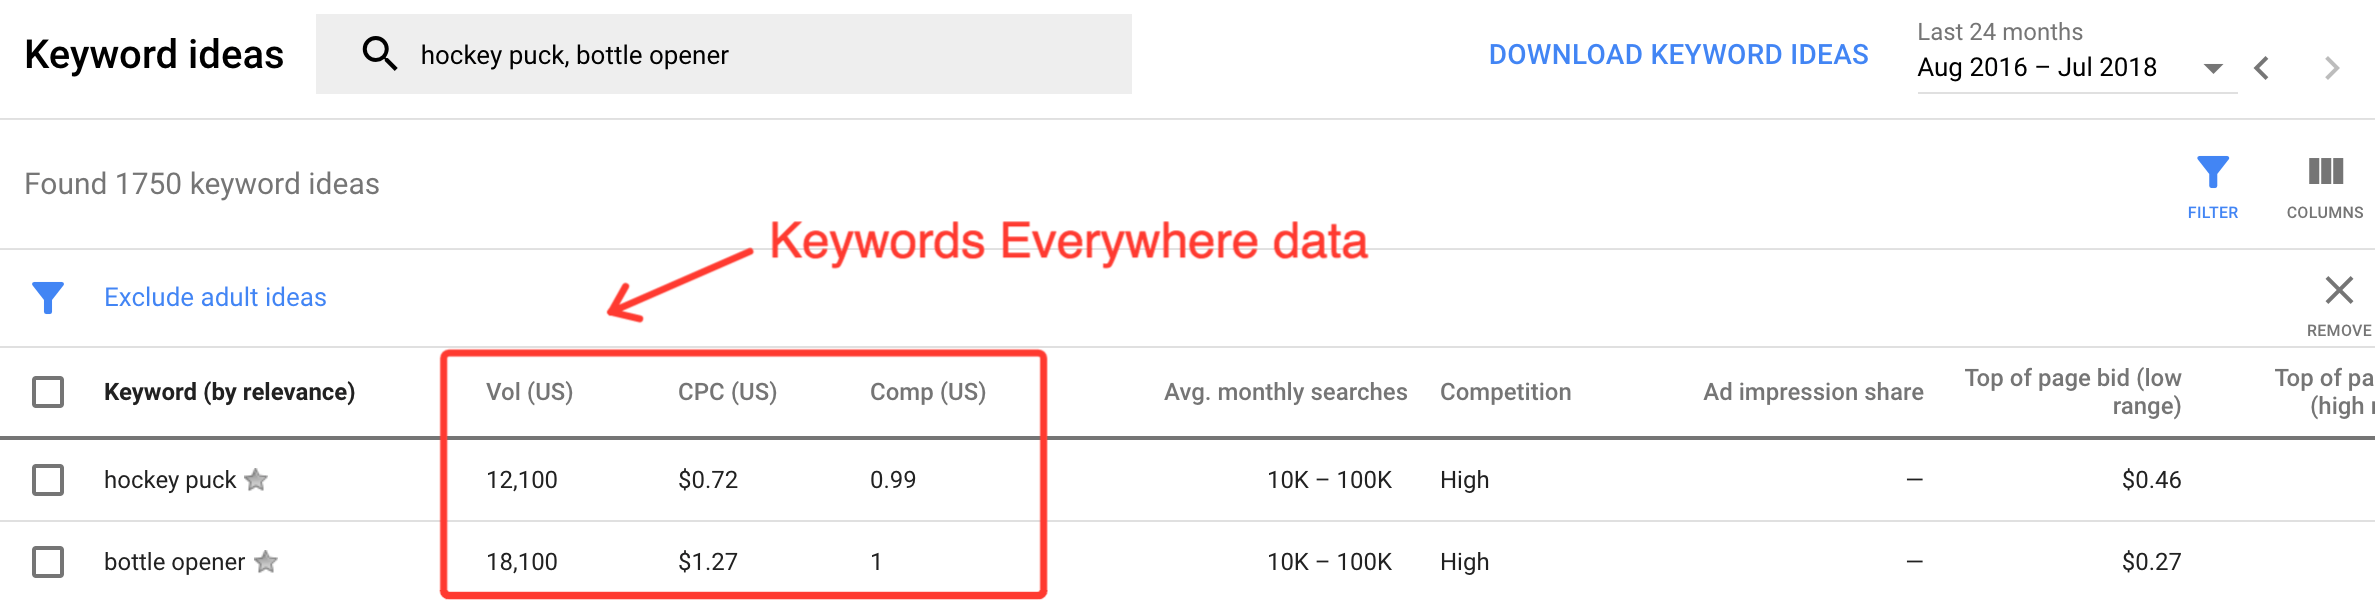 Keywords Everywhere Data in the Google Keyword Planner